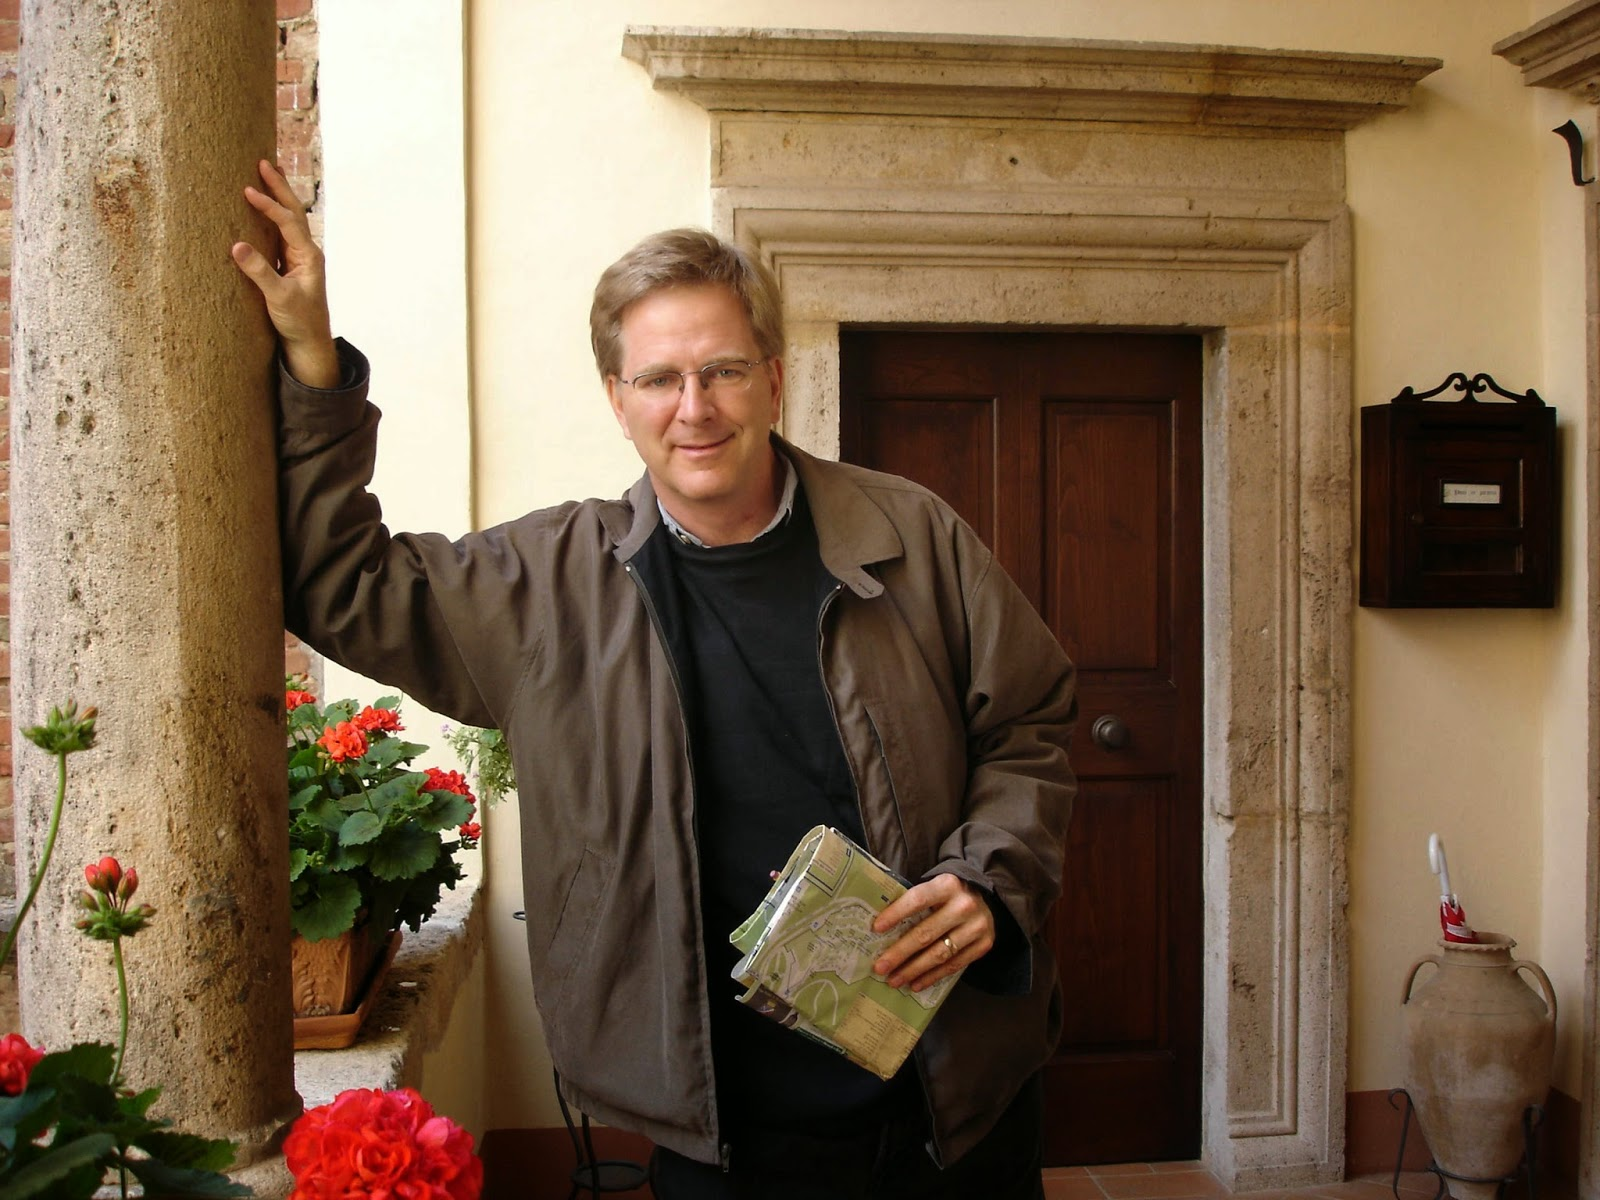 Rick Steves, the unwelcome guest in our household